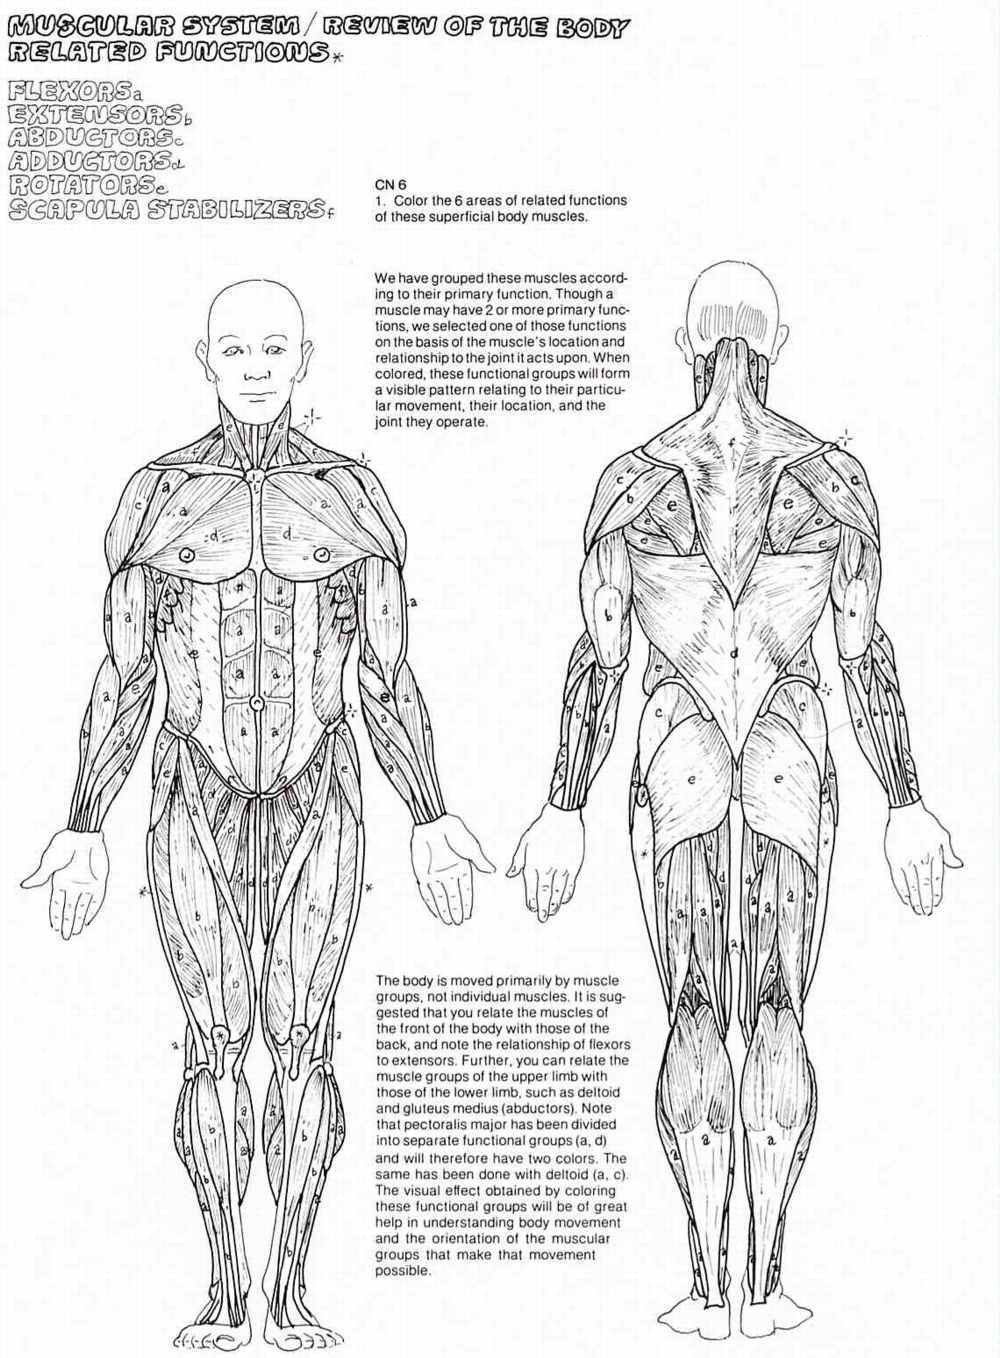 4tb4mbrjc freerintable anatomy coloringages for adults worksheets college